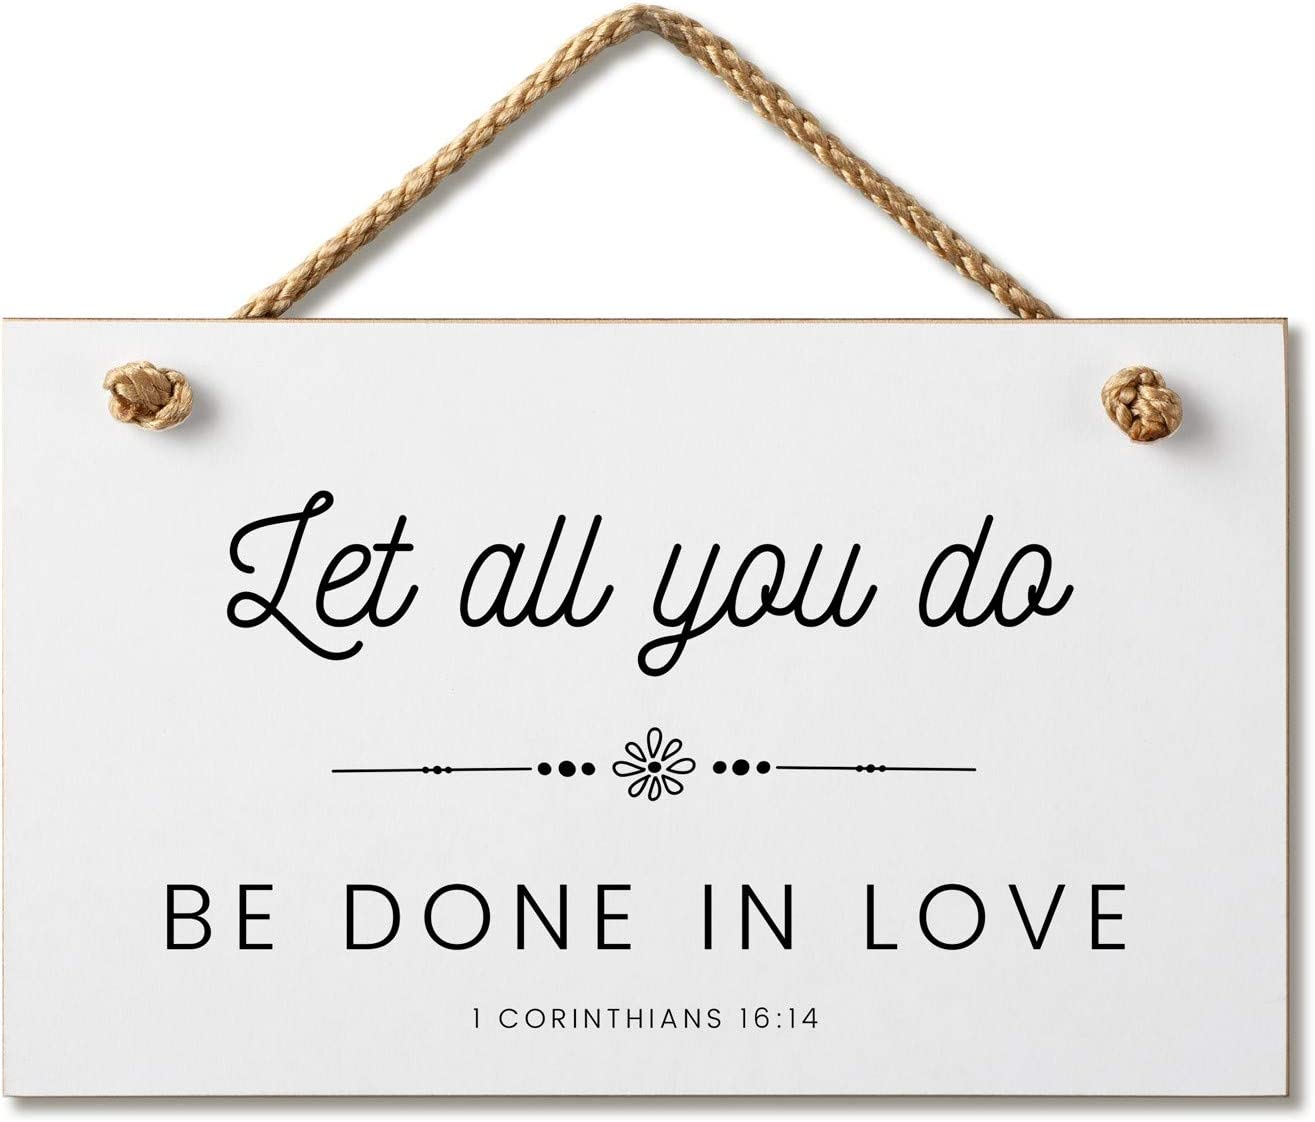 Marvin Gardens Designs Farmhouse Style Bible Verse Wall Decor Wood Sign 9.5 x 5.5 Inch Wood Made in The USA (Let All You Do (White), 9.5 x 5.5)